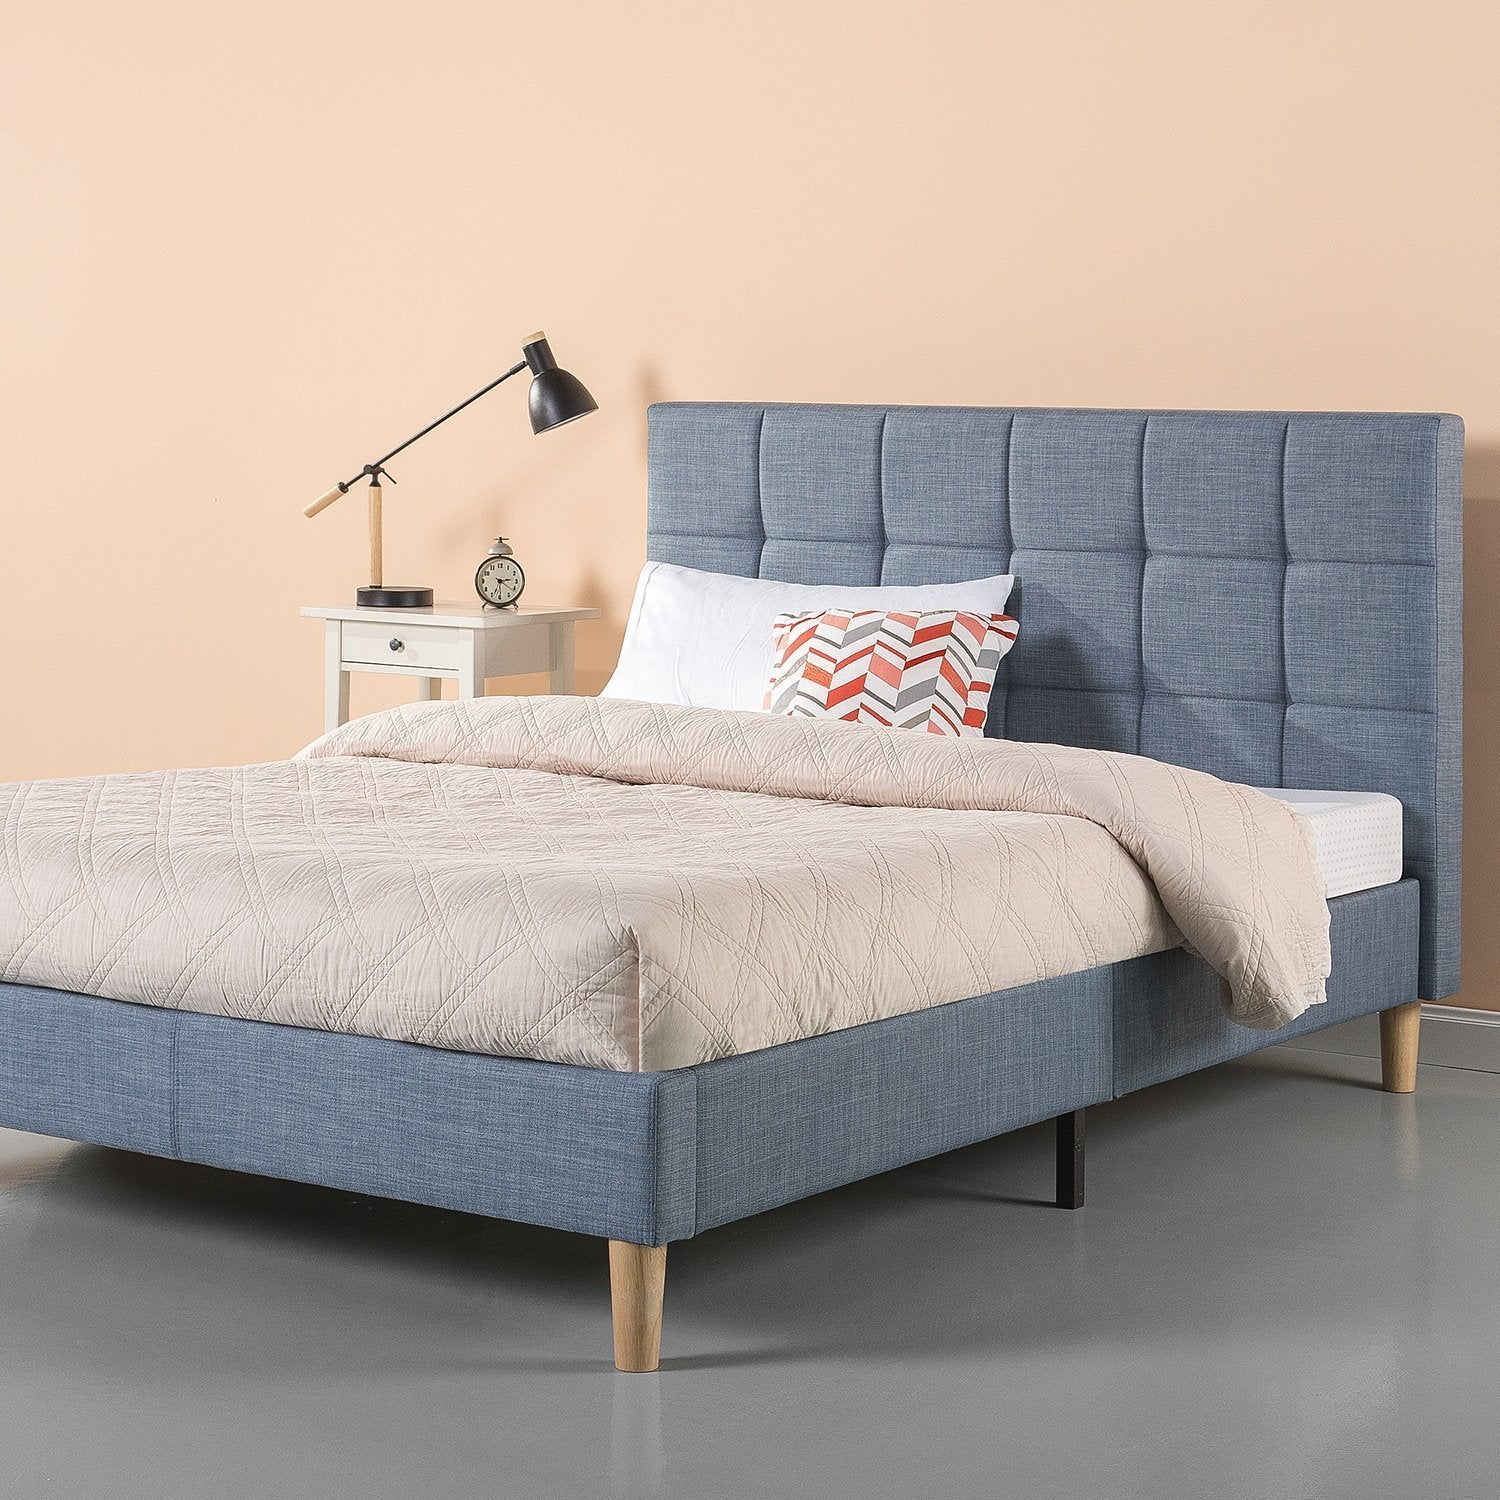 New Century Light Blue Square Style Contemporary Headboard Platform Bed